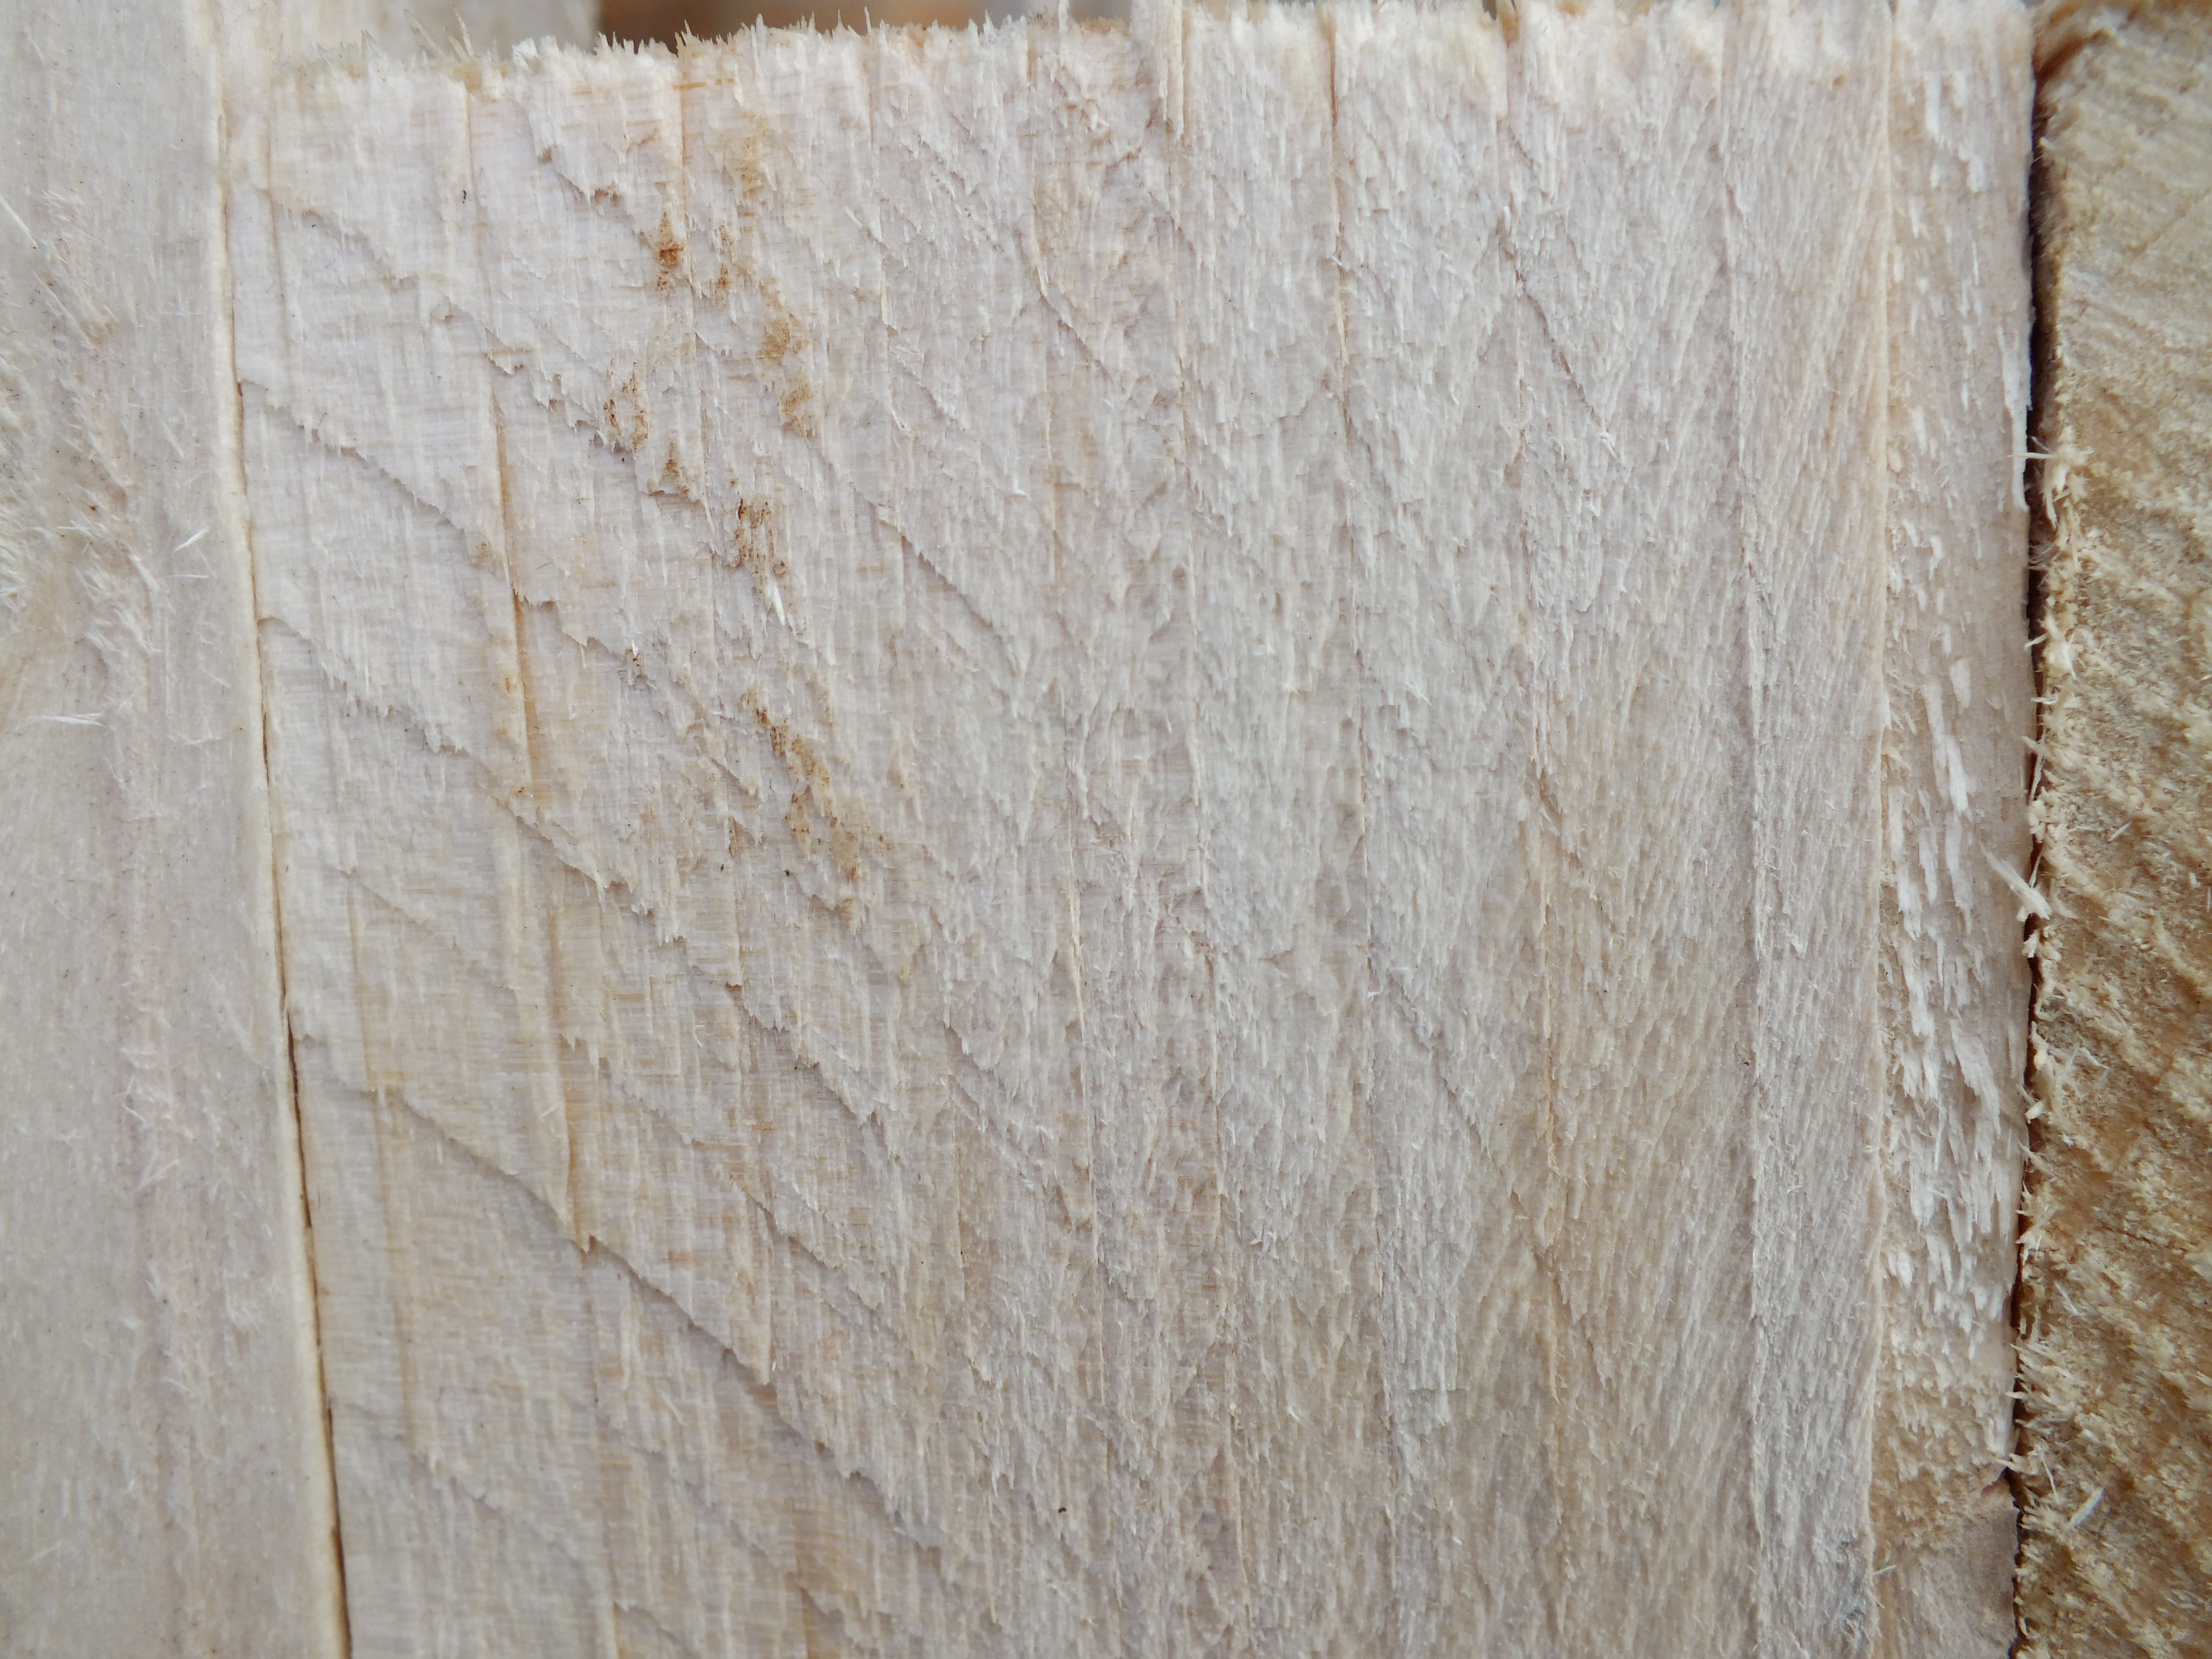 Wood, Board, Texture, Tree, HQ Photo